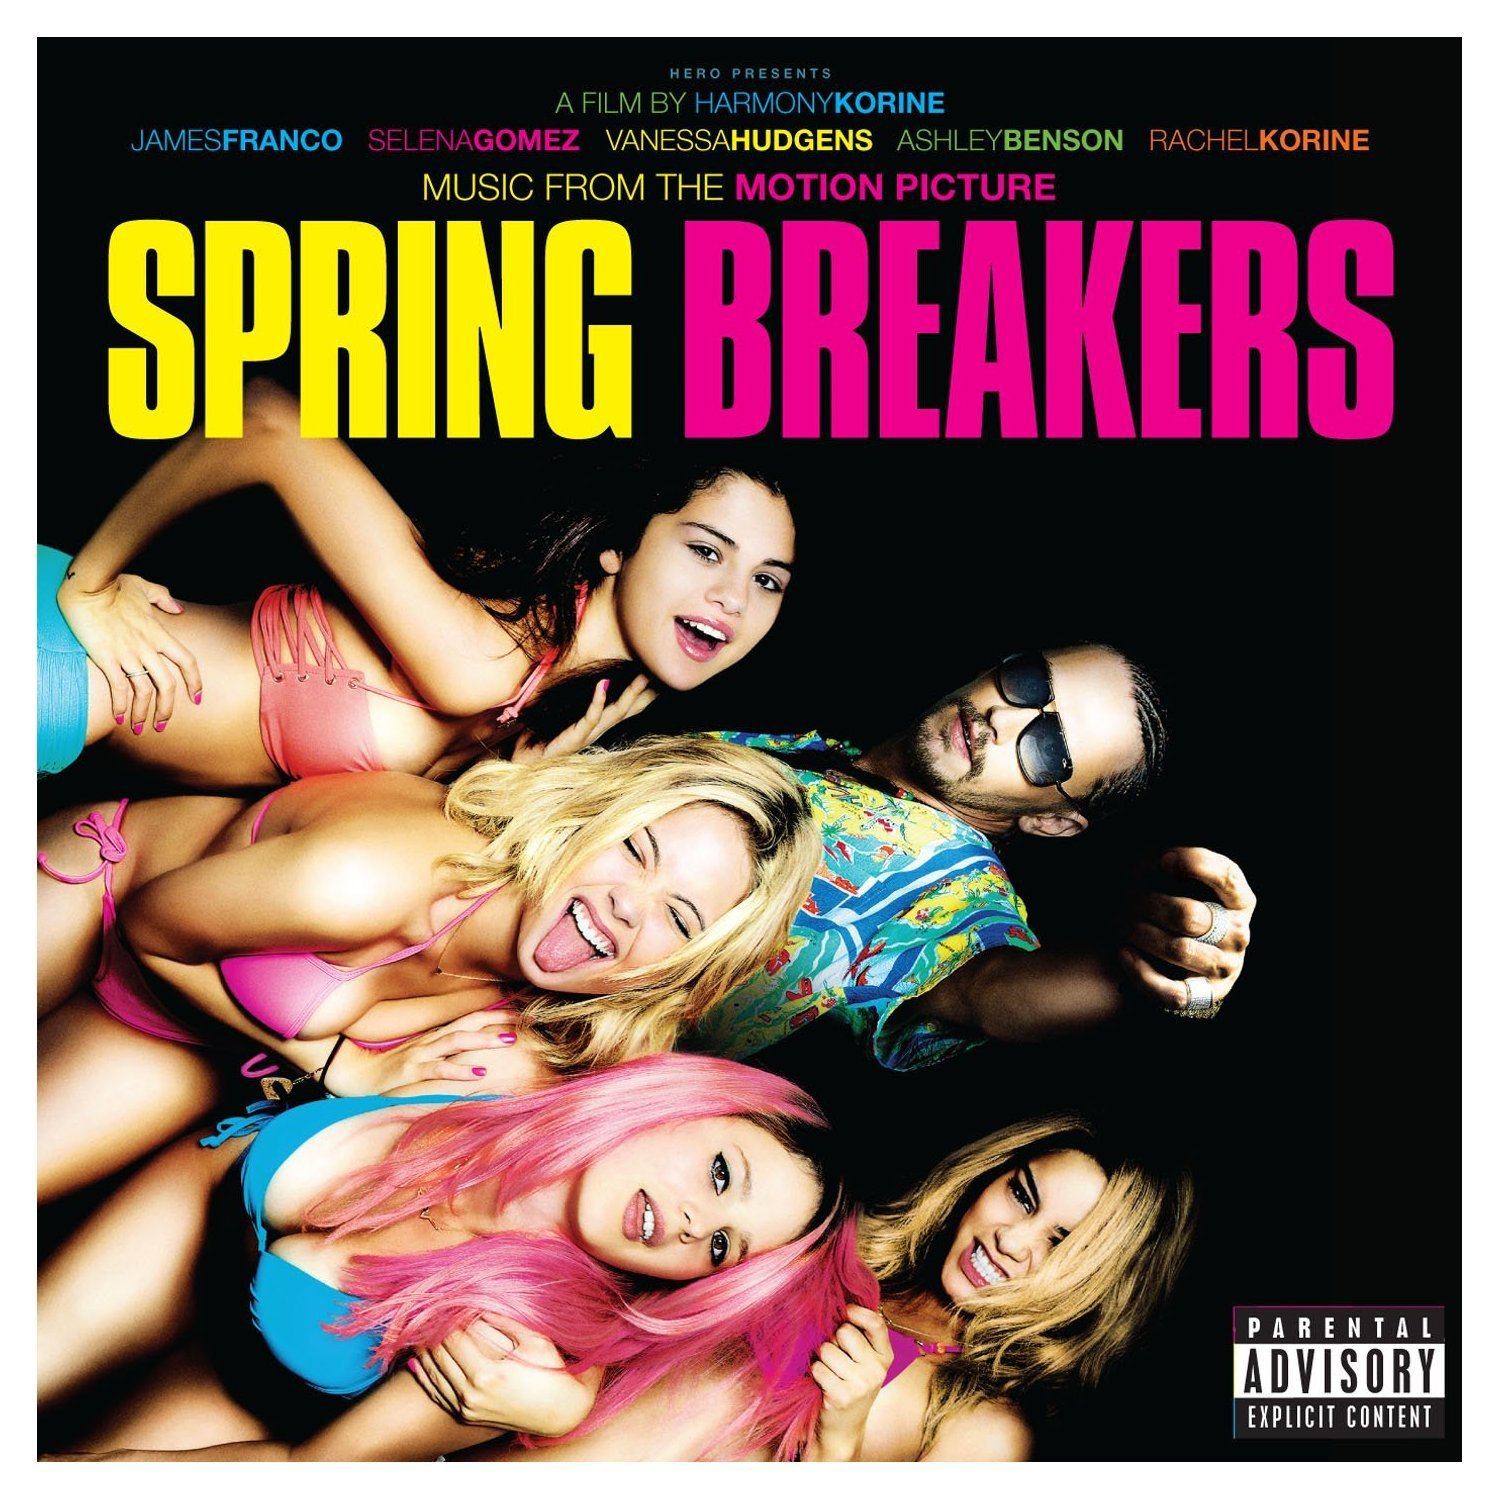 spring breakers The 100 Greatest Movie Soundtracks of All Time